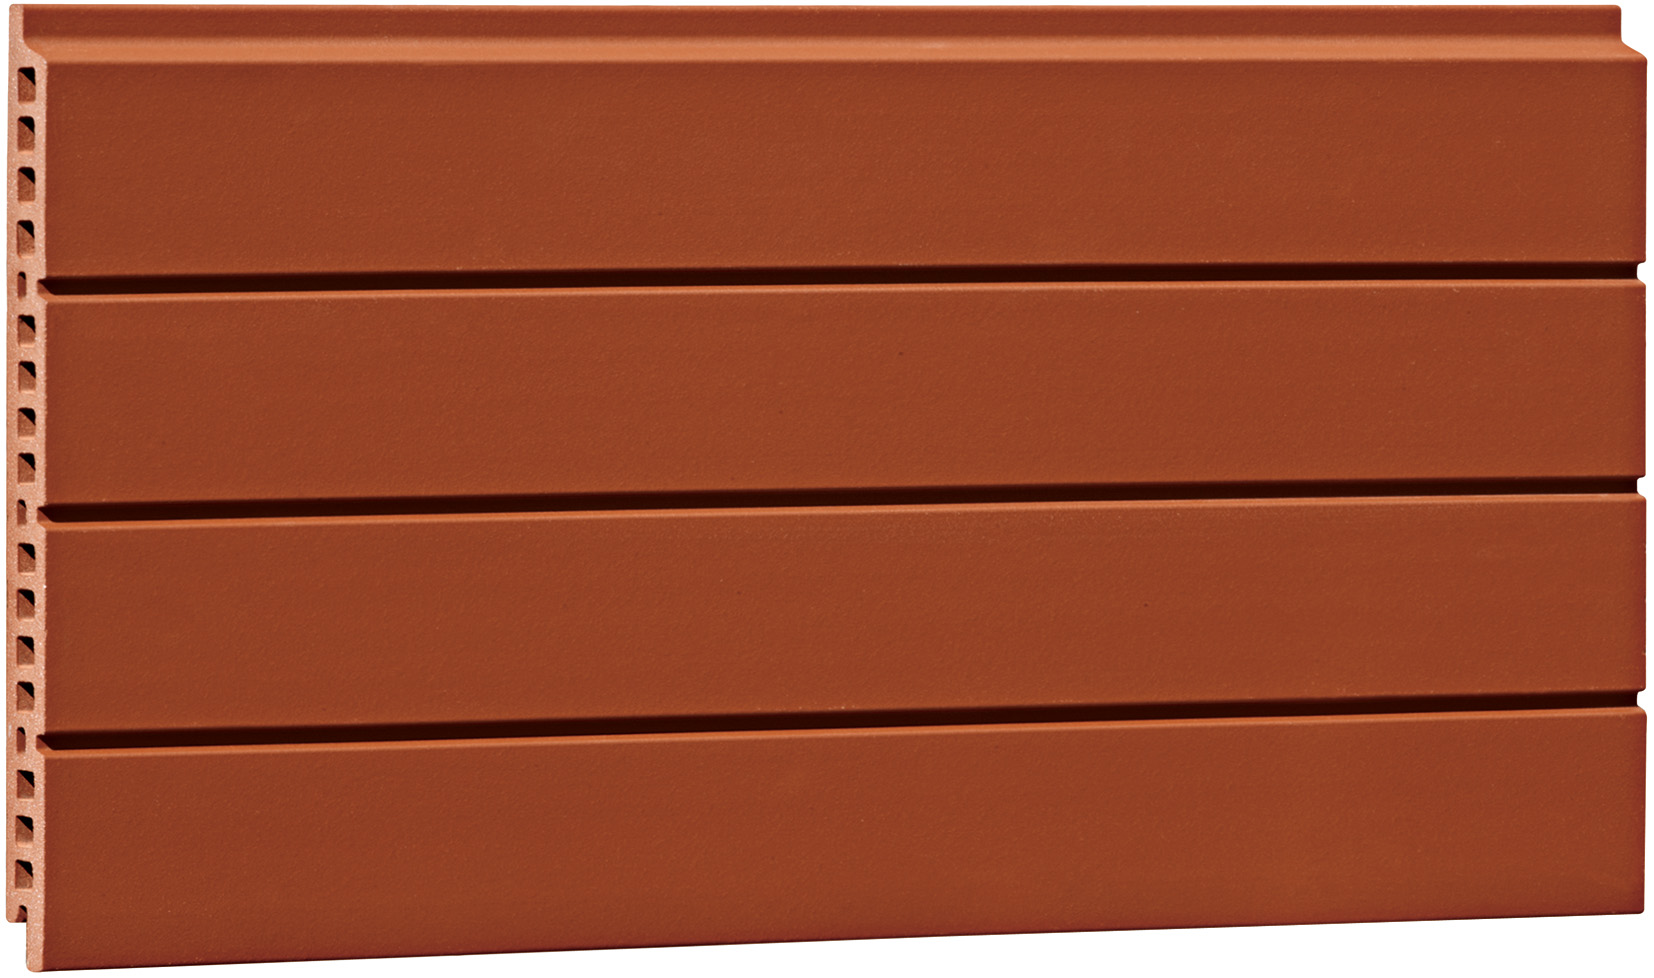 Terracotta Facade Panel FG352169